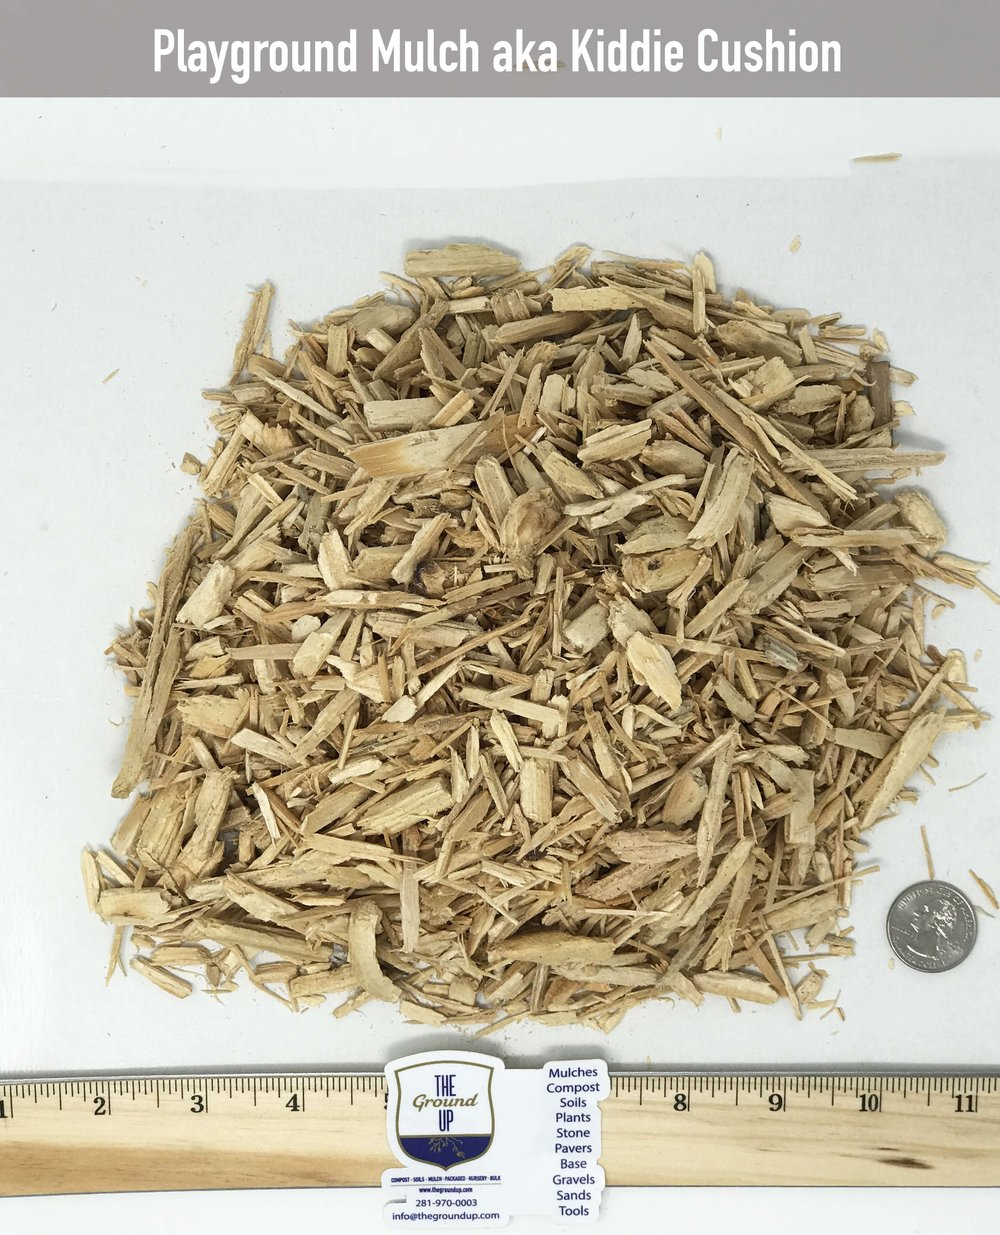 Playground Mulch Chipped virgin Pine and/or Red Oak. This material is tested for playground applications.